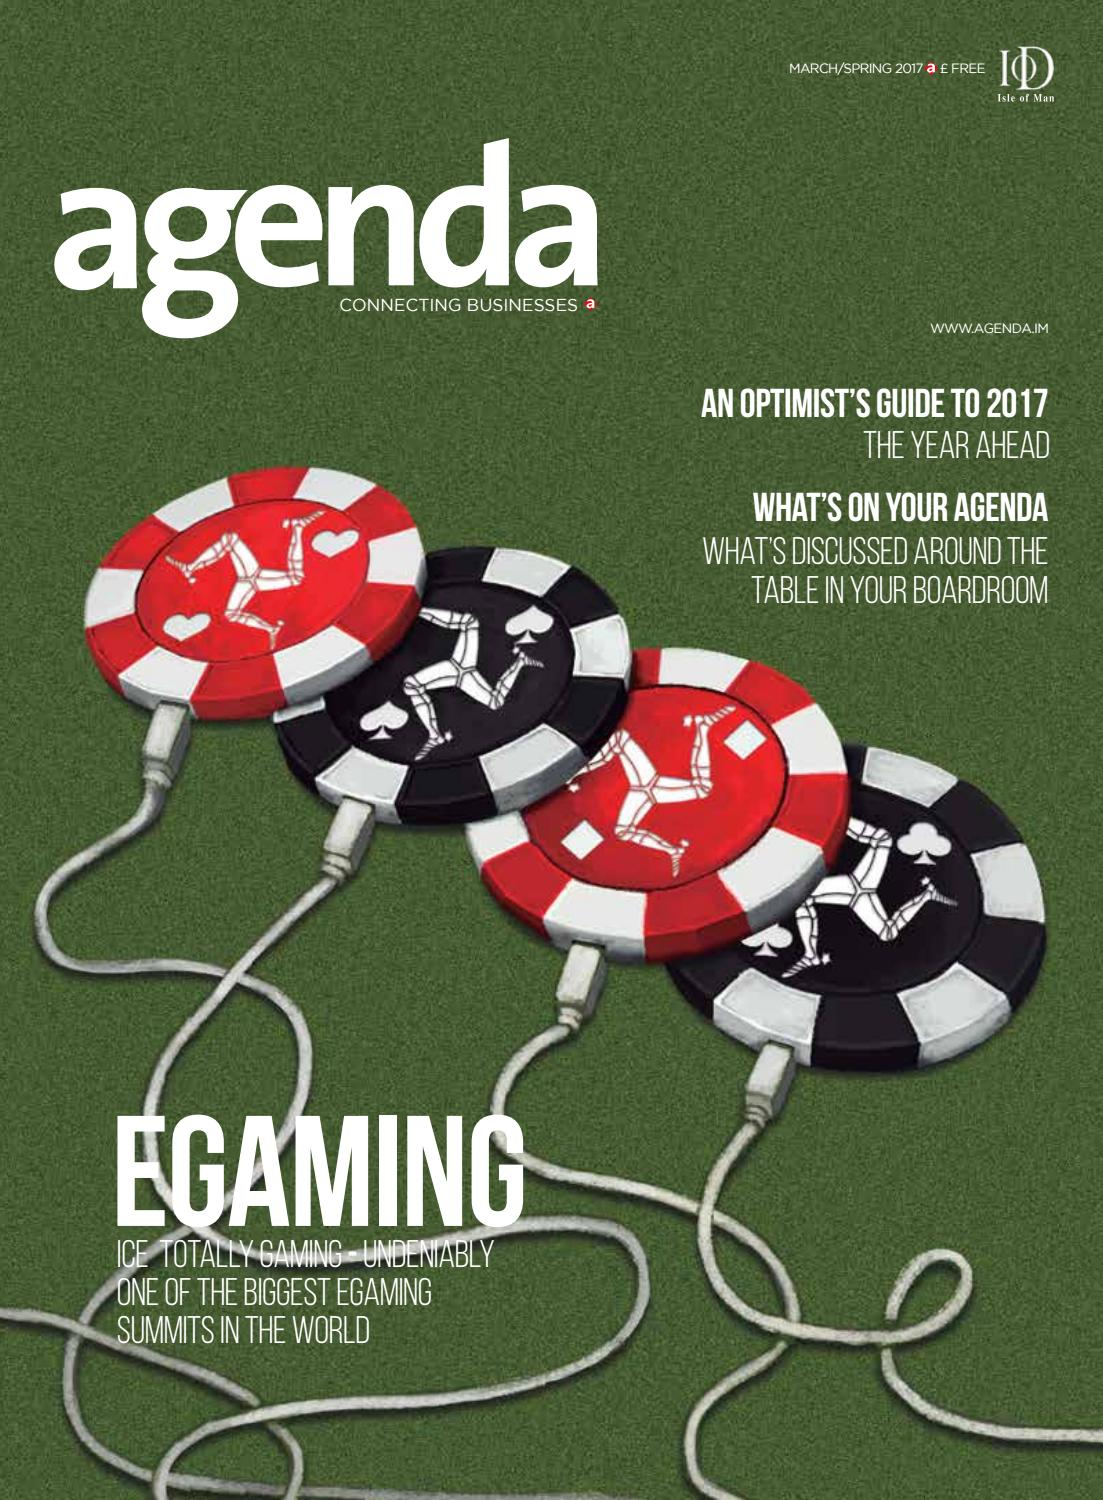 agenda | March/Spring 2017 by Isle of Man Media - issuu